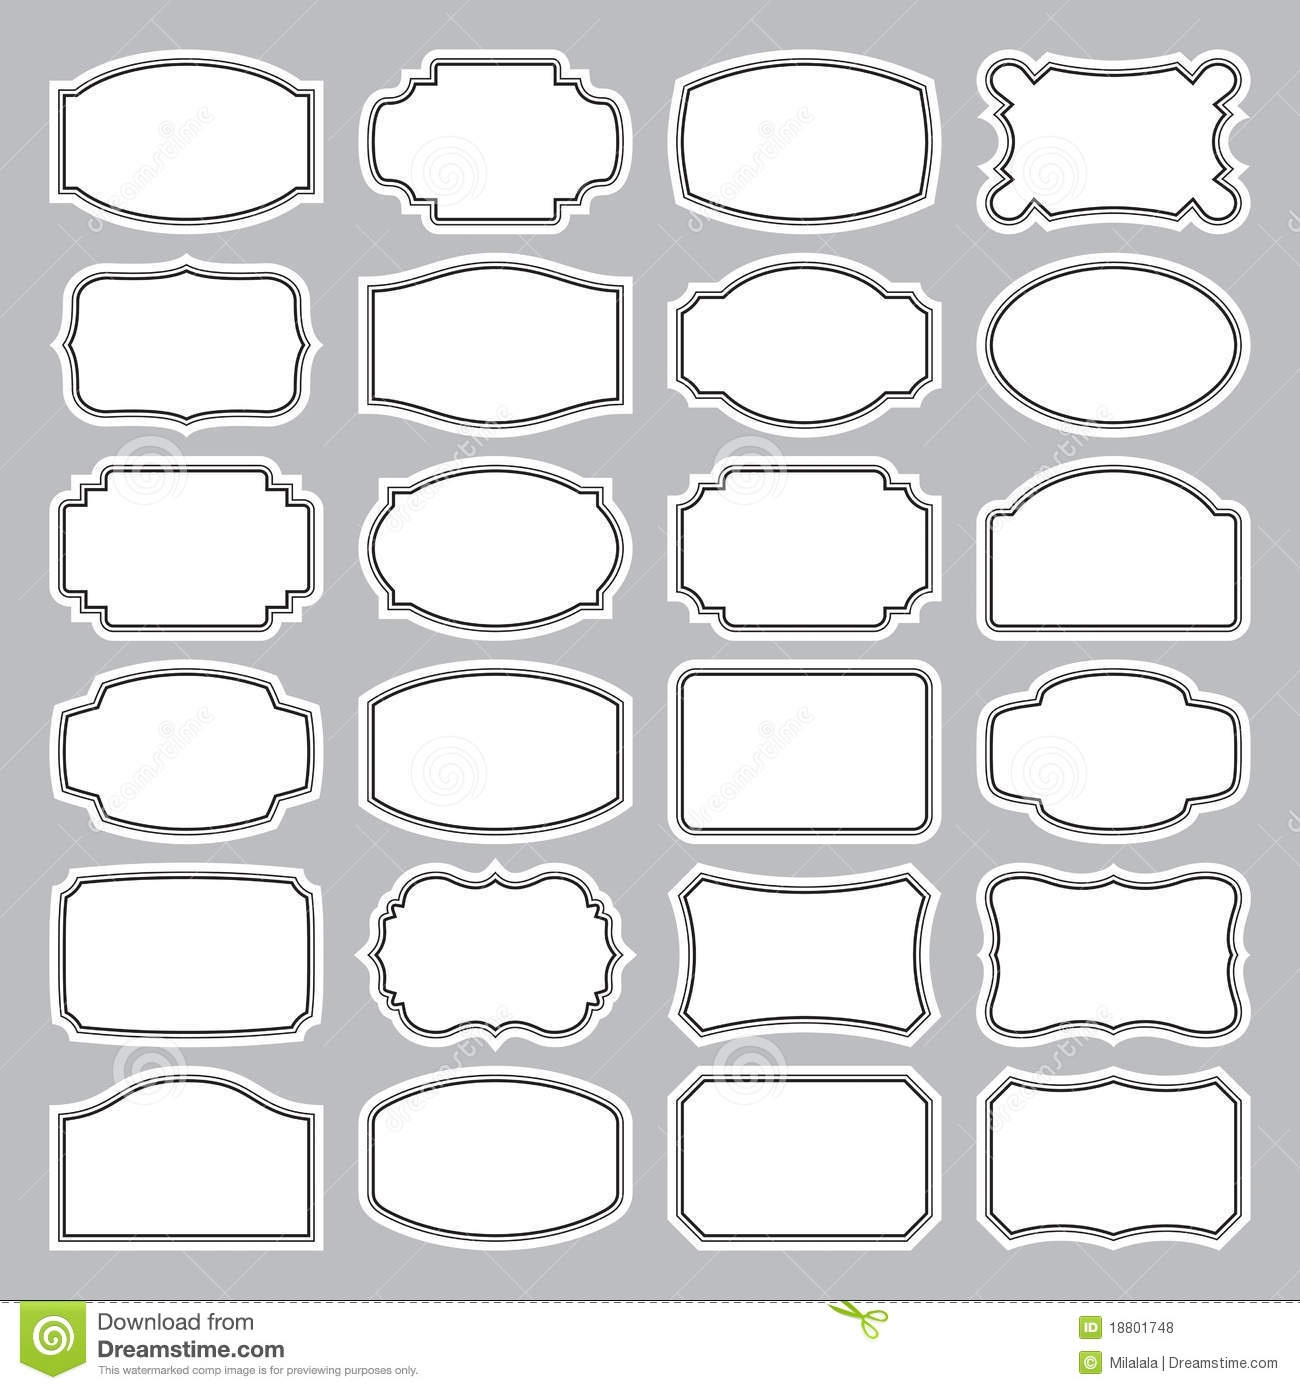 15 Blank Label Vector Images - Free Printable Blank Labels, Blank - Fancy Labels Printable Free